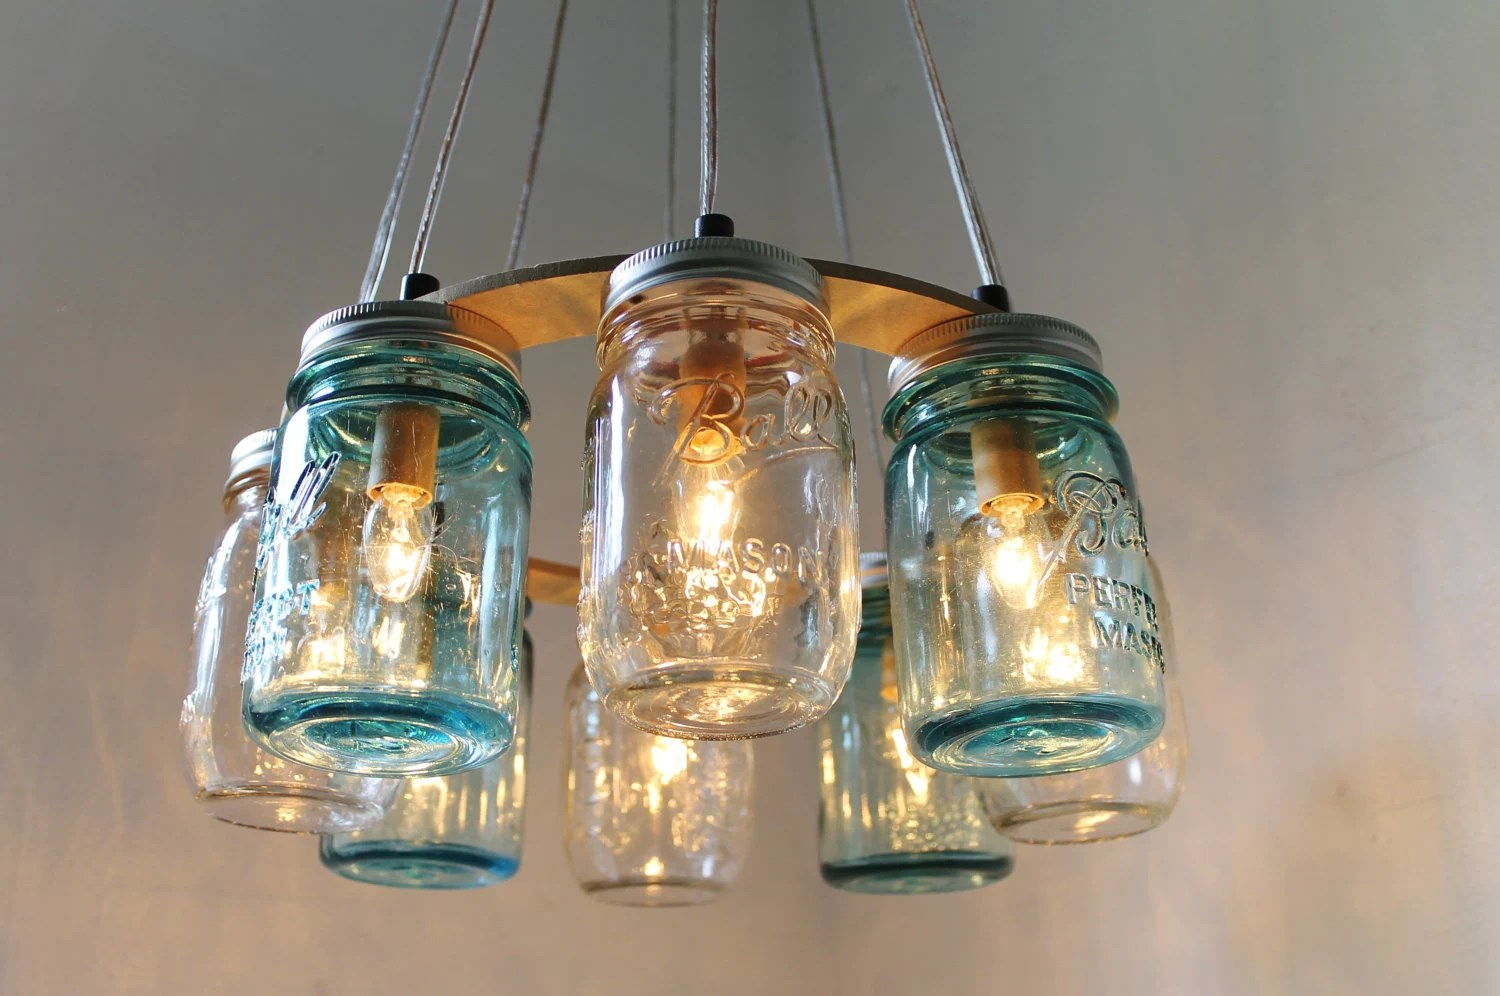 Lighting Fixtures Mason Jar Chandelier Beach House Mason Jar Lighting Fixture Blue And Clear Jars Hanging Pendant Light Bootsngus Lighting Bulbs Included